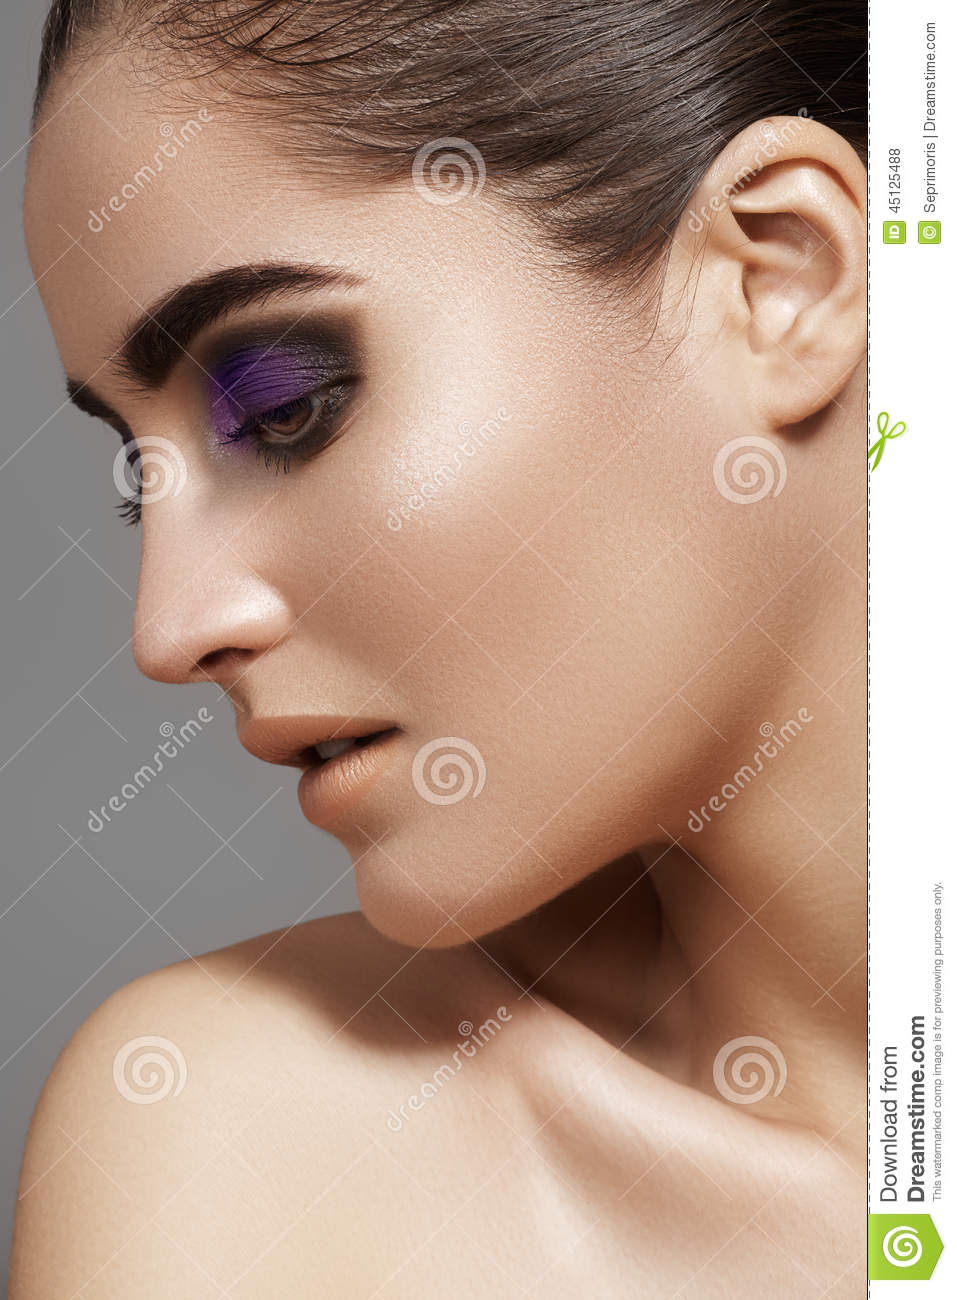 Clean And Shiny >> Beautiful Model Face With Fashion Eyes Make-up, Purity Skin Stock Photo - Image: 45125488